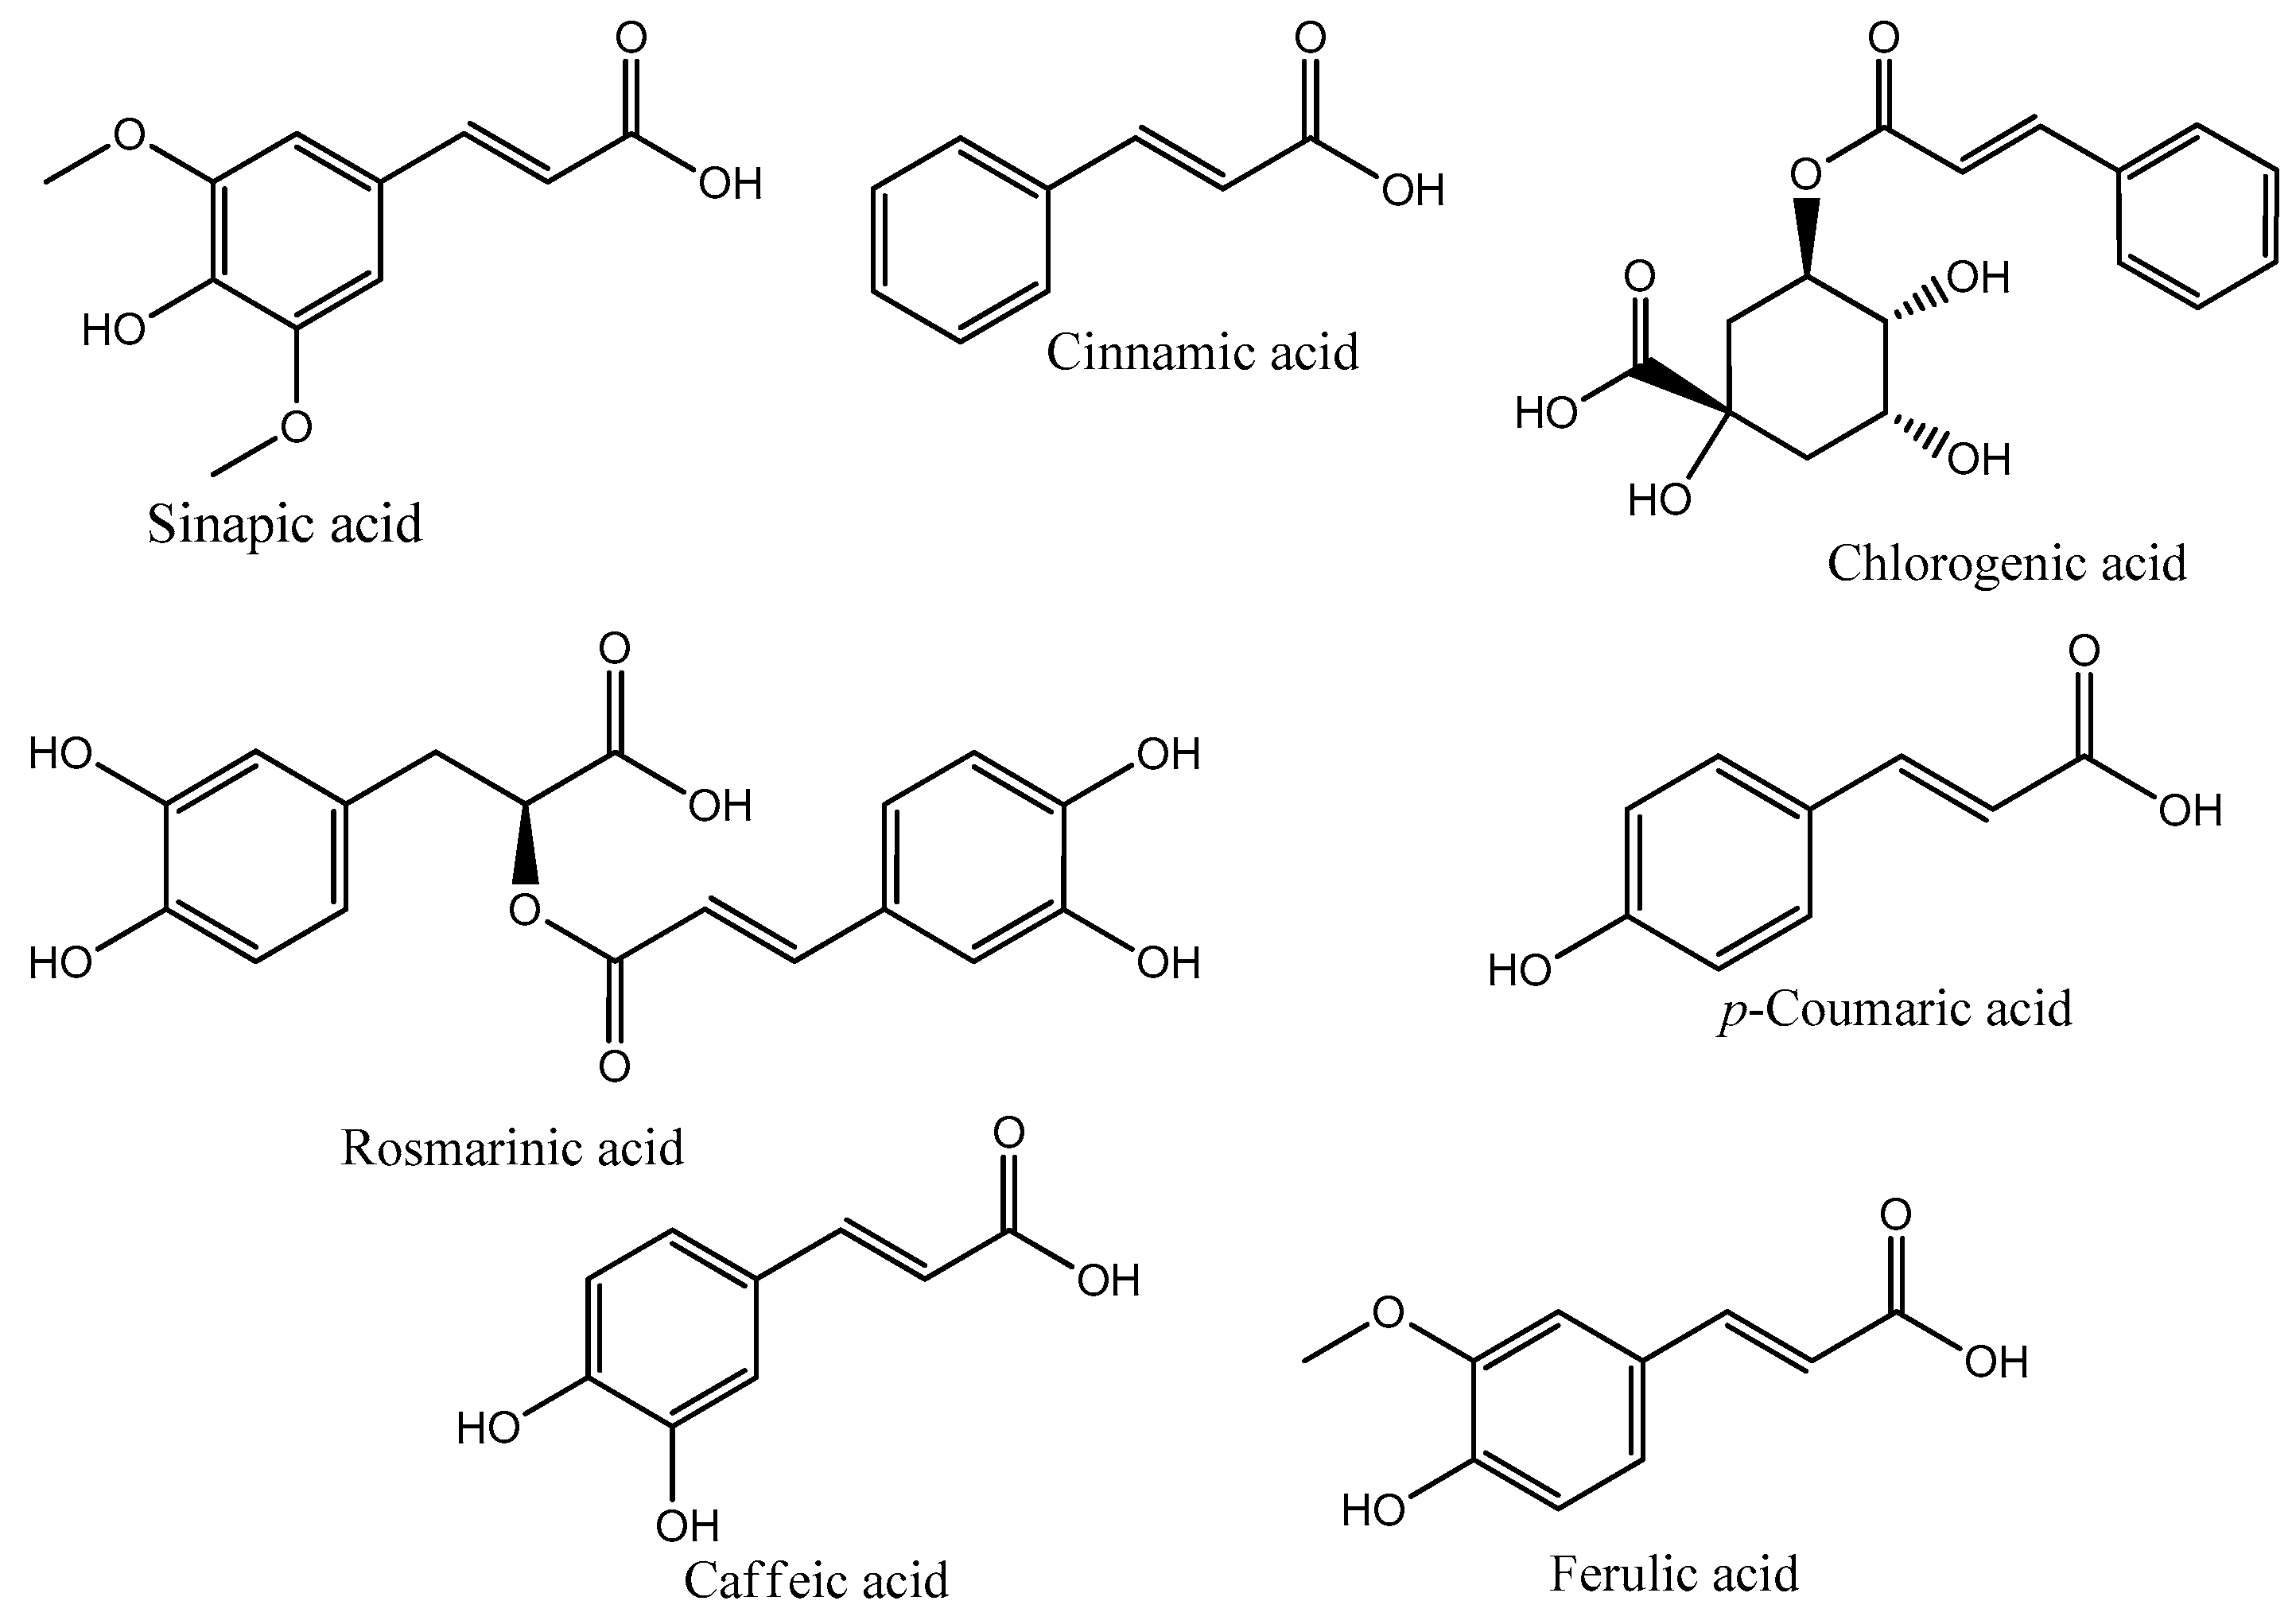 Schematic Representation Of Hydroxycinnamic Acid Synthesis Molecules 22 00281 G002 Figure 2